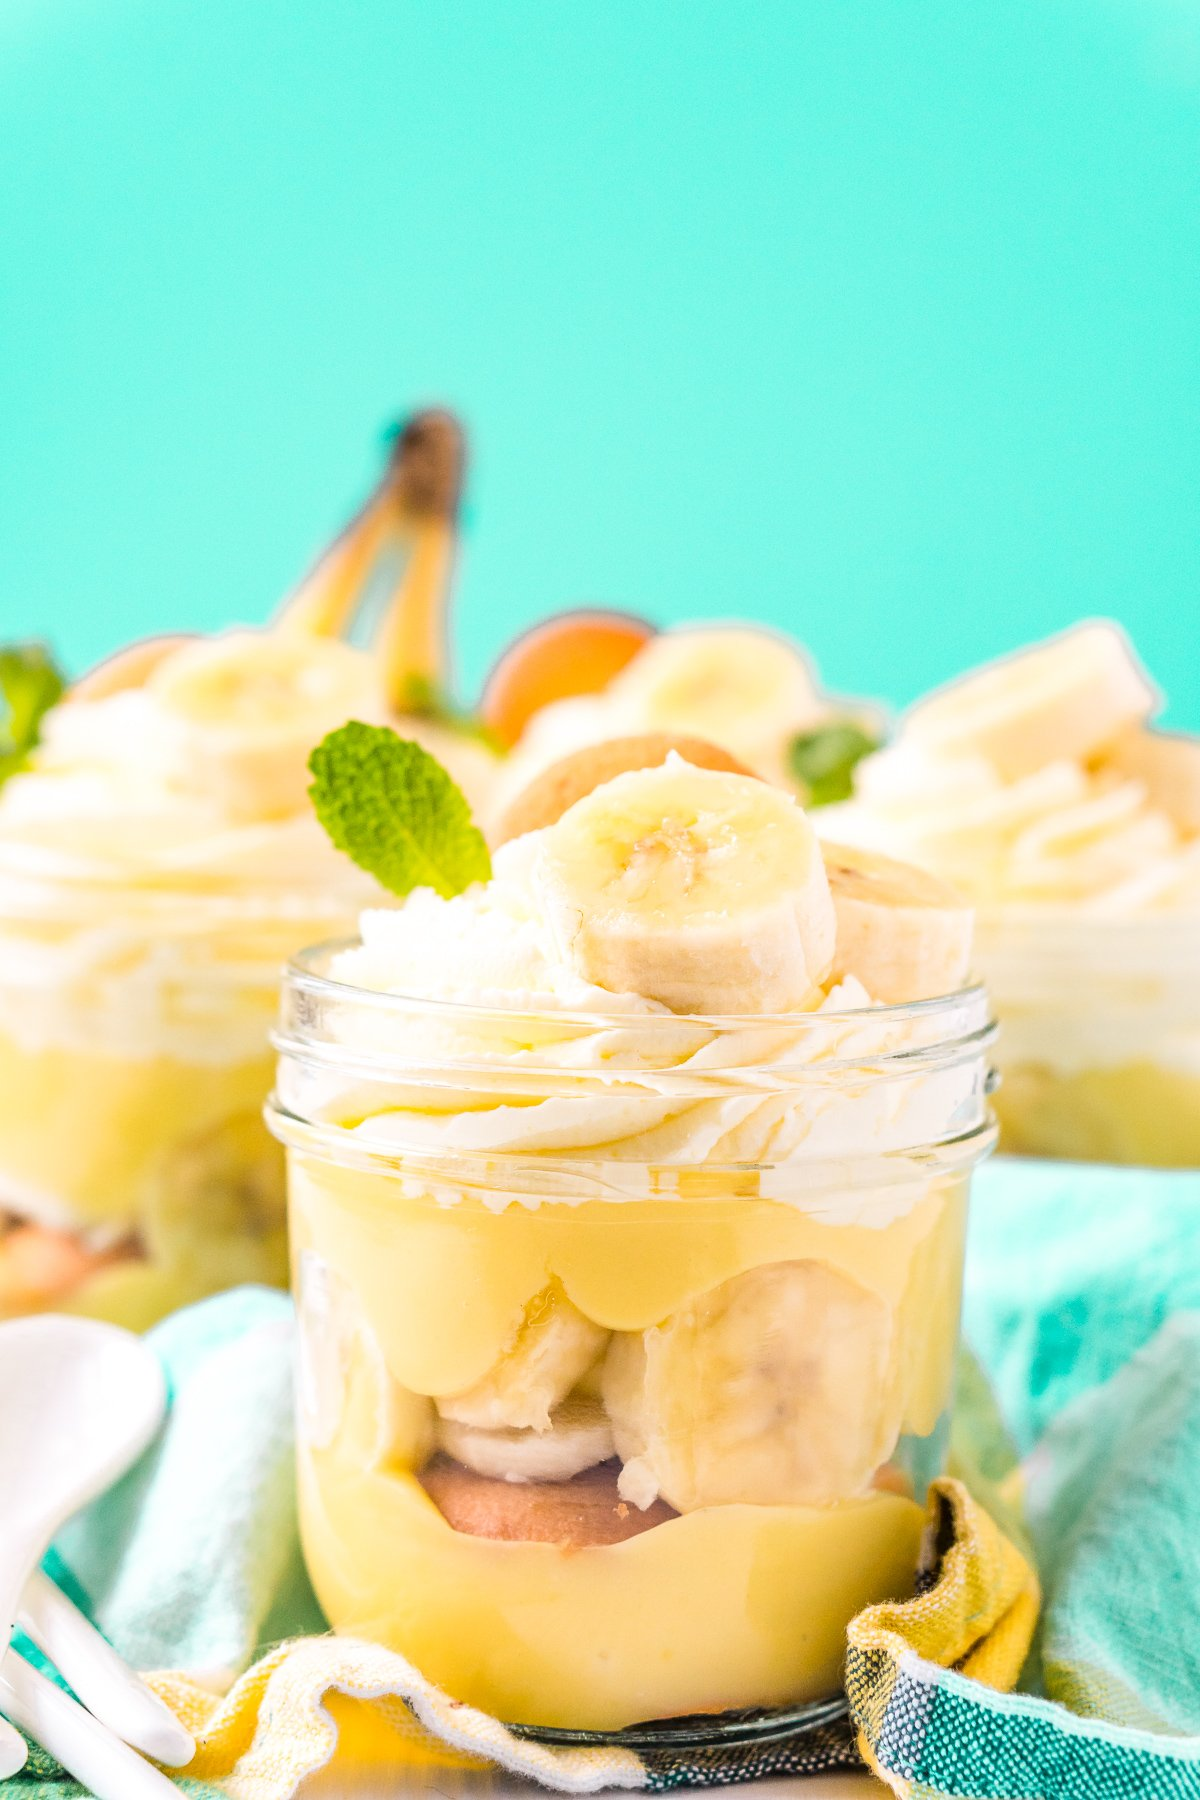 Jars of banana pudding on a blue napkin.